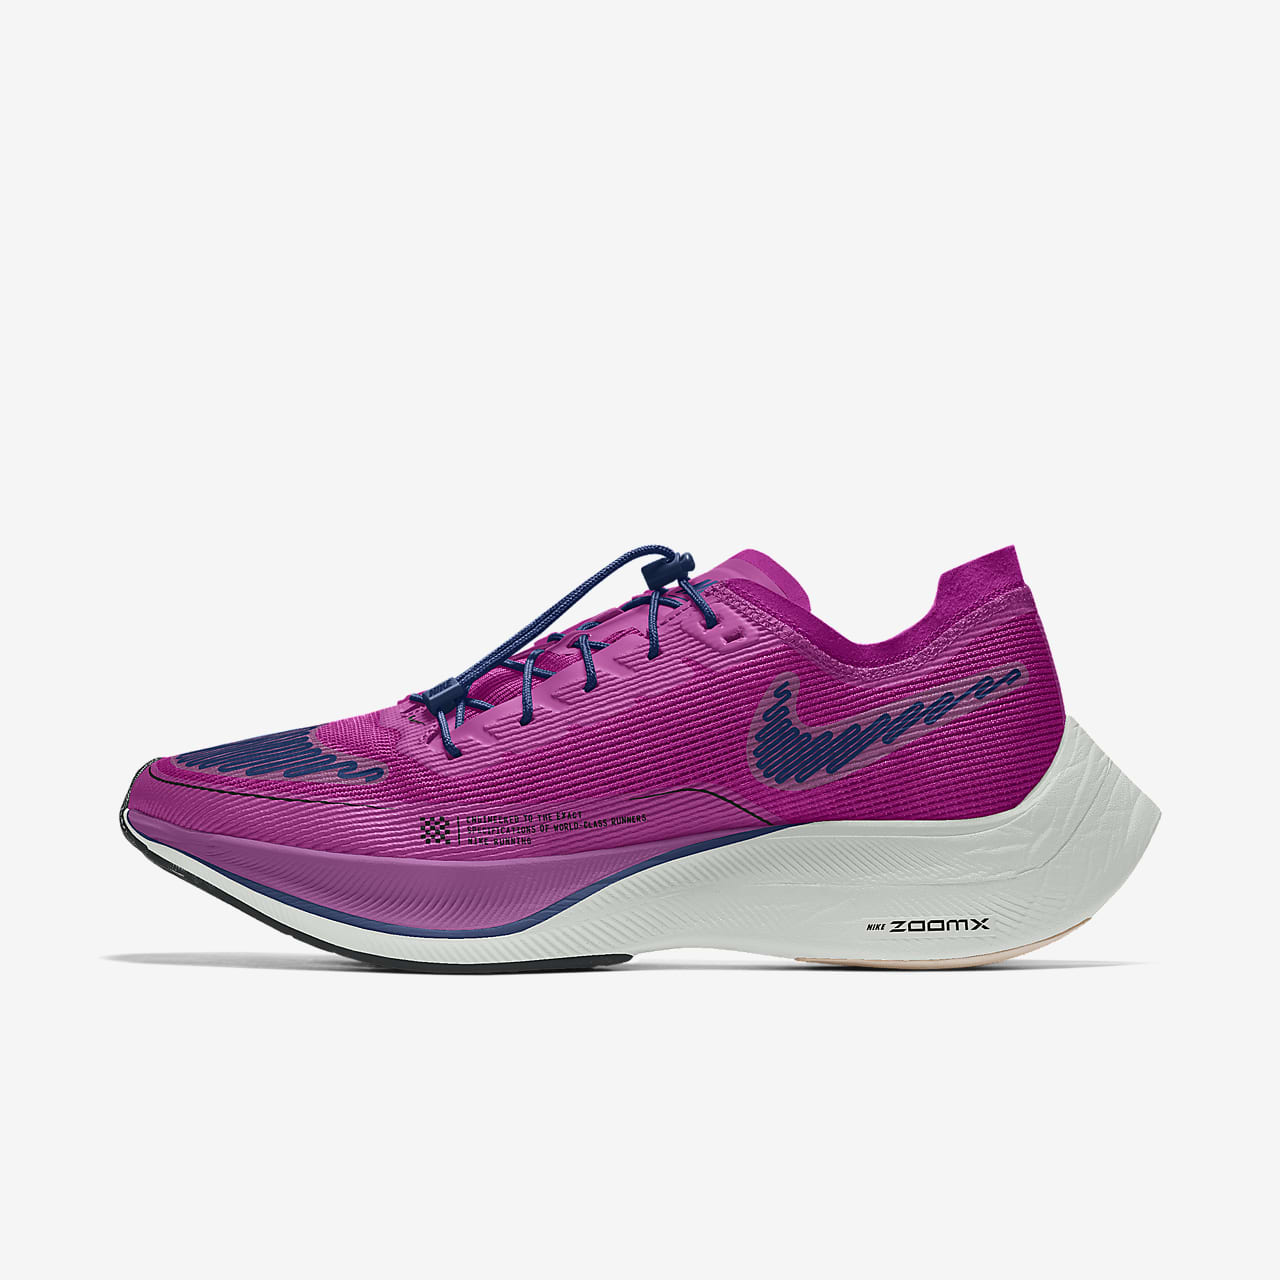 Nike ZoomX Vaporfly NEXT% 2 By You Men's Road Racing Shoes